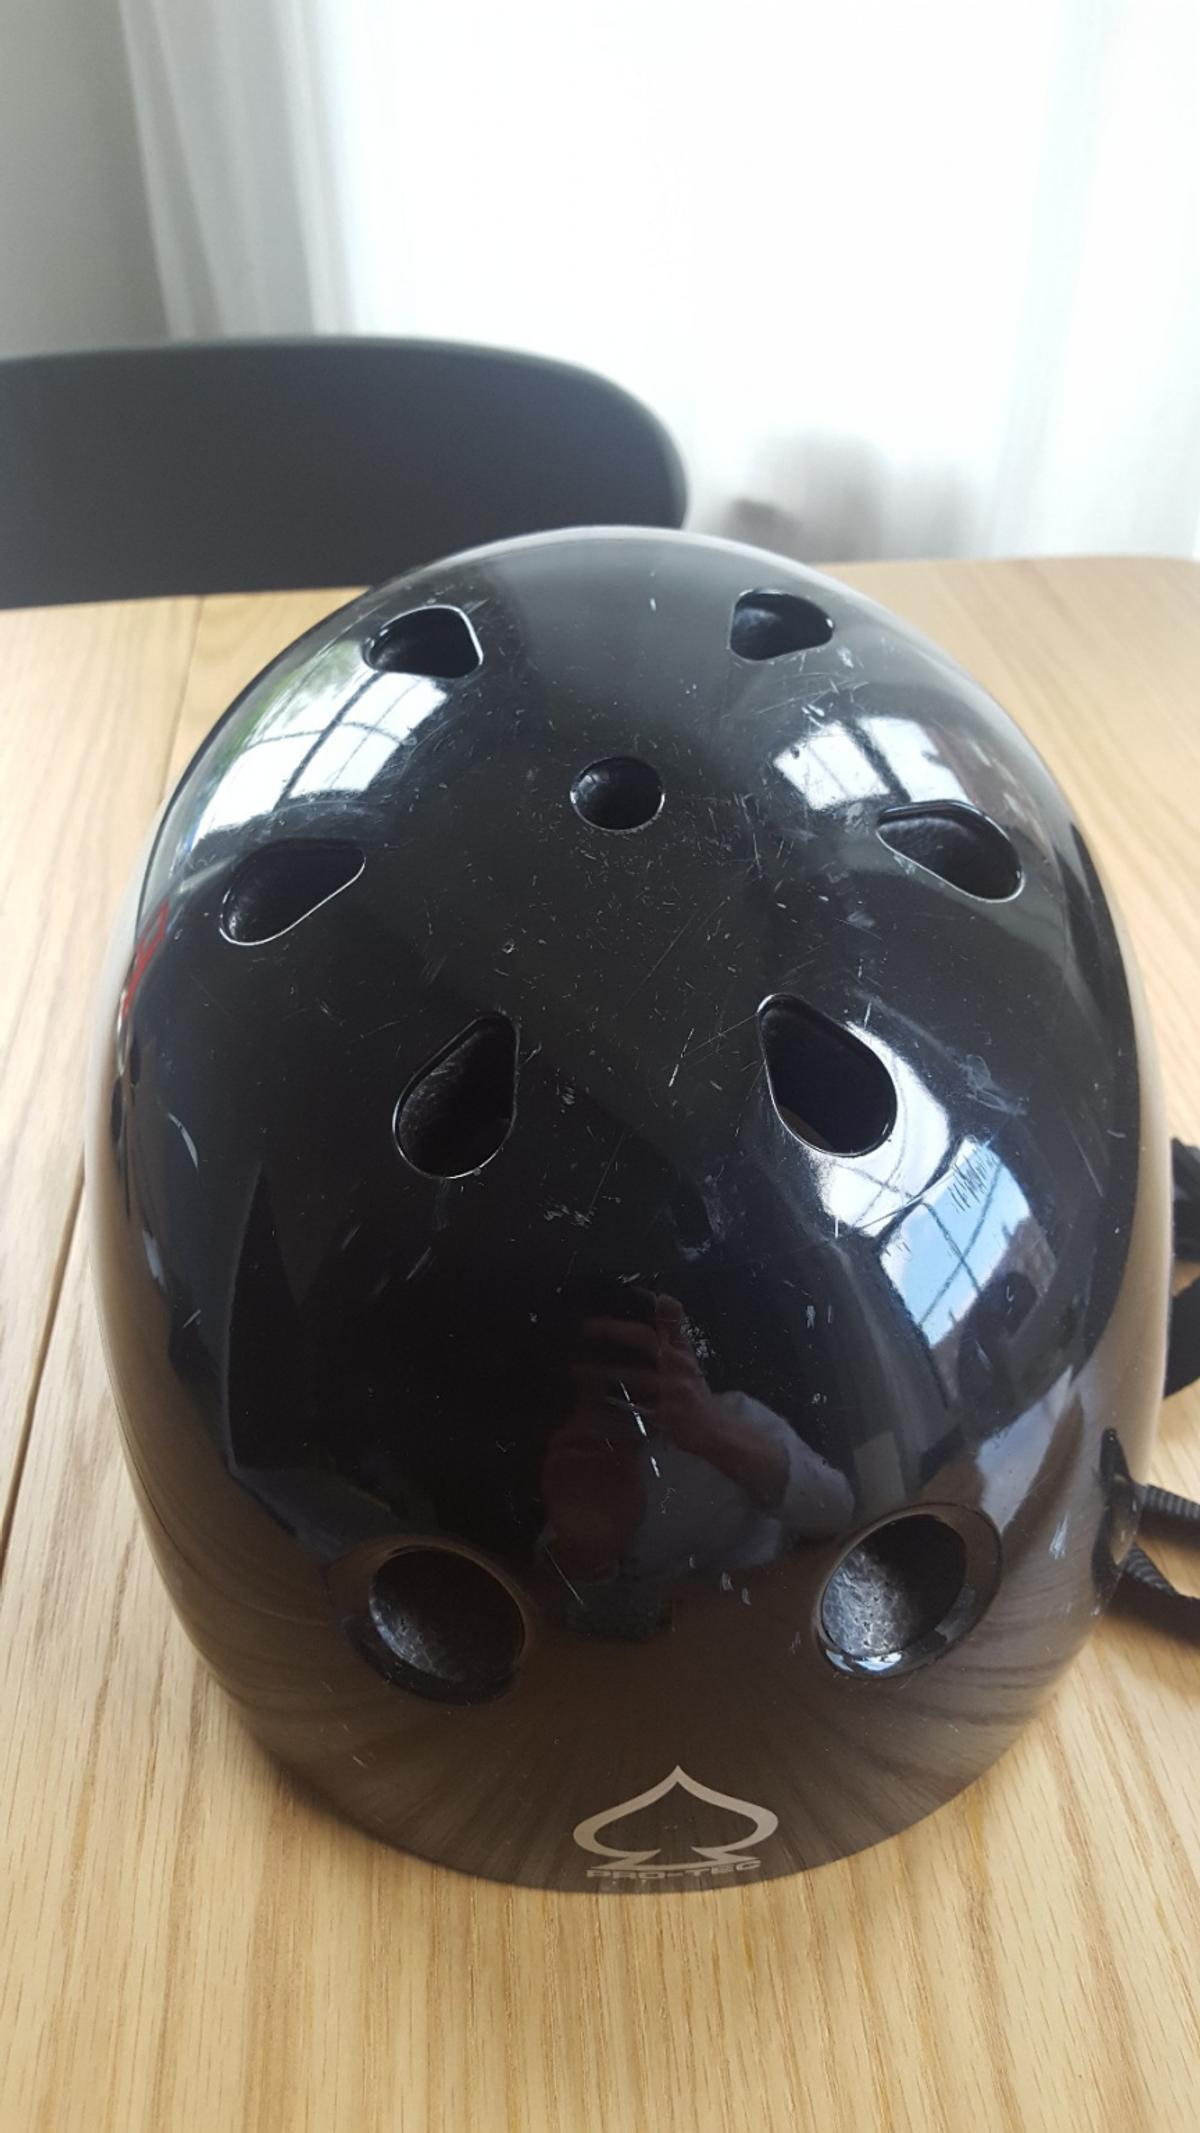 Unisex helmet in size M. Was used for a couple of years but not used since as no longer cycle. Has a foam inside and protective padding with a chin strap.